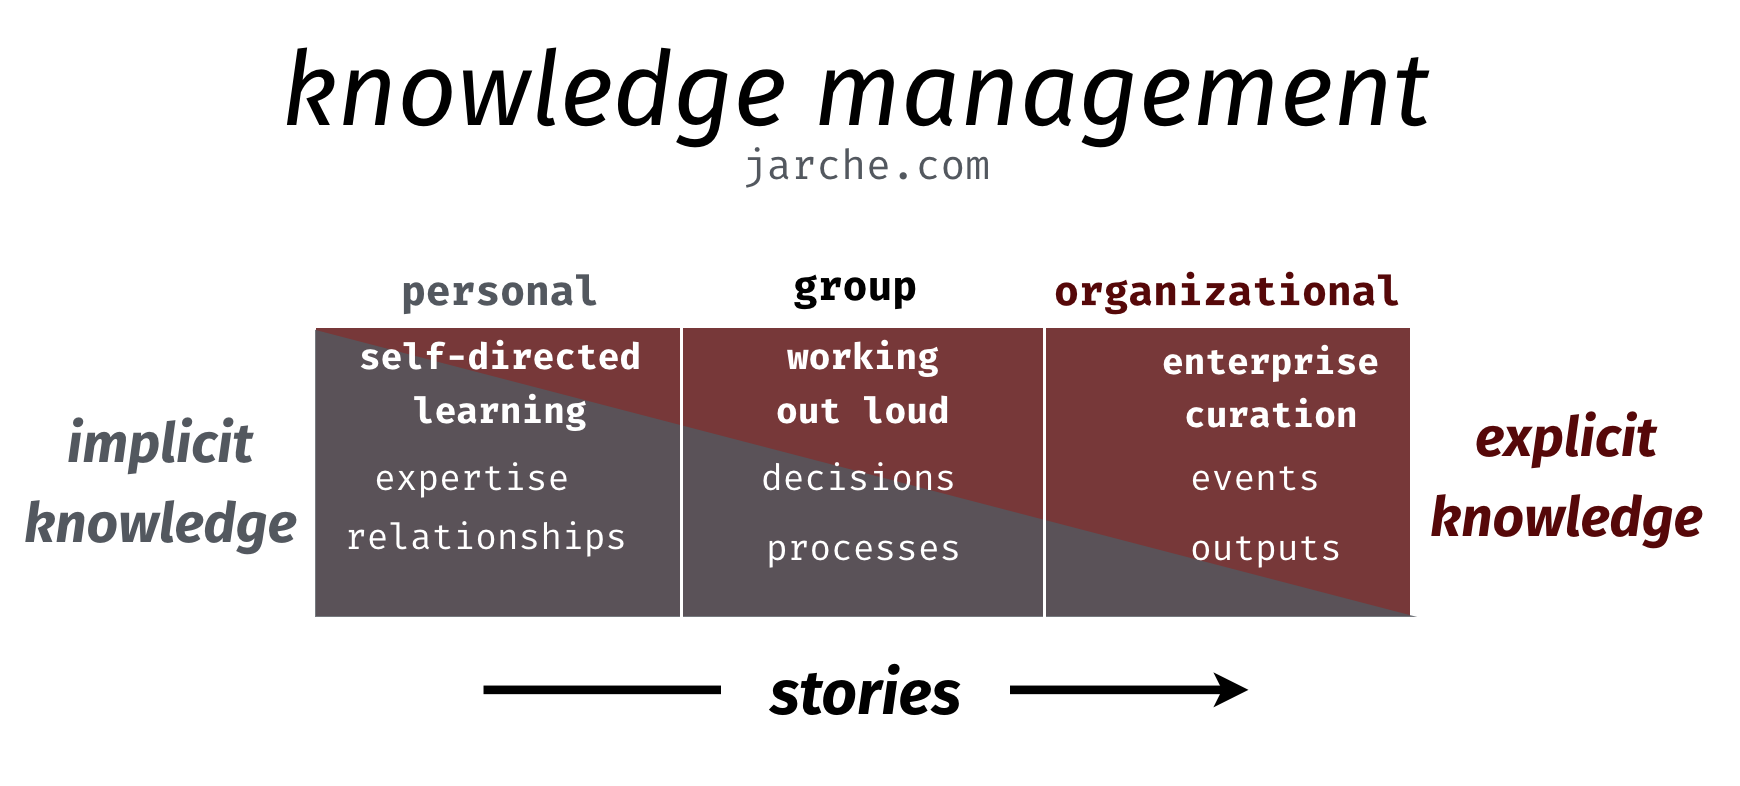 knowledge management frame work The ultimate tool for developing your knowledge management apqc's knowledge management framework outlines the stages of km strategy implementation along.